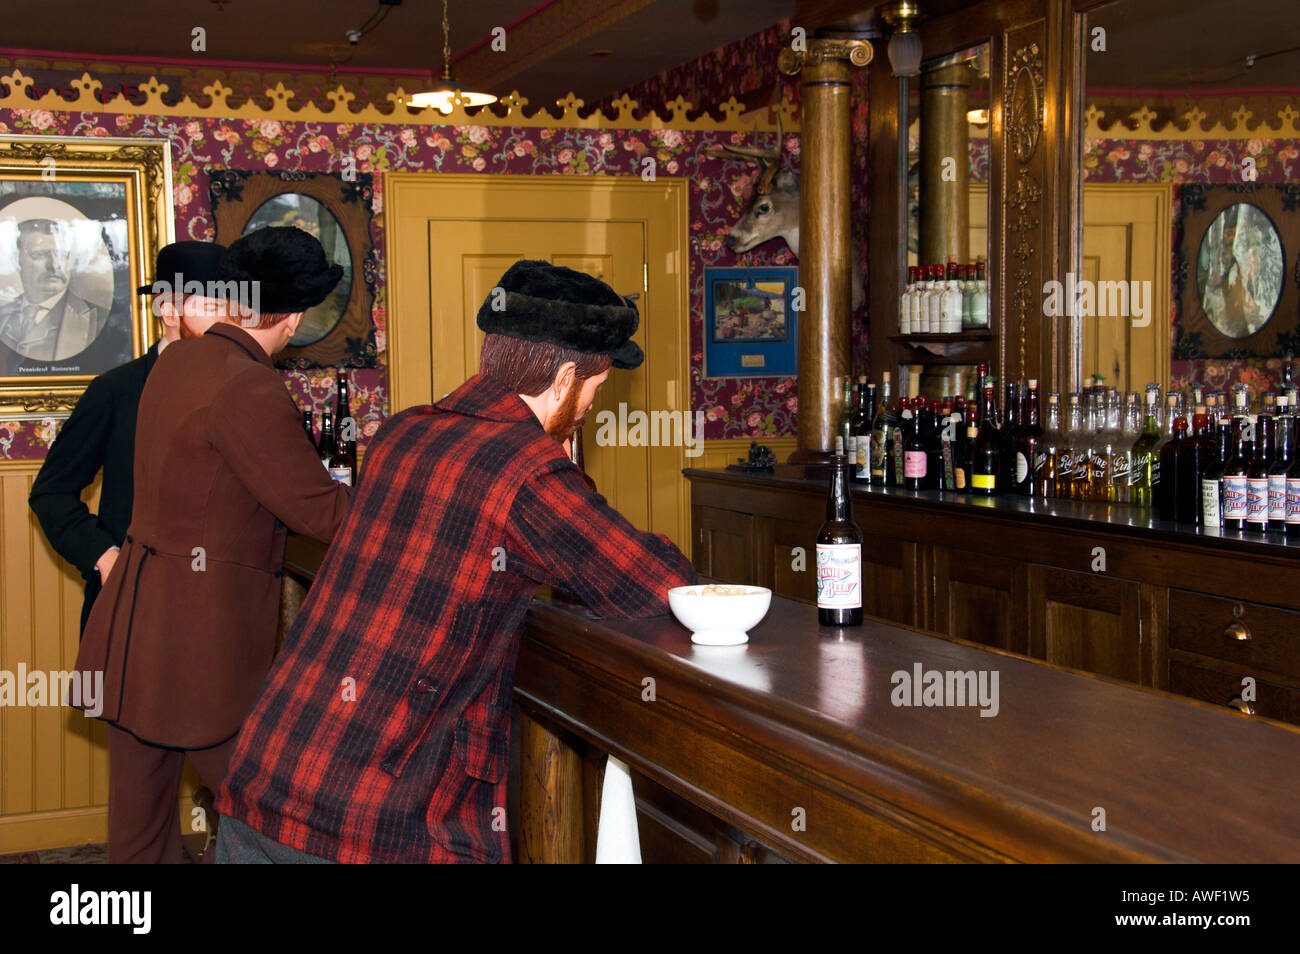 Interior view of a saloon in Skagway Alaska USA - Stock Image